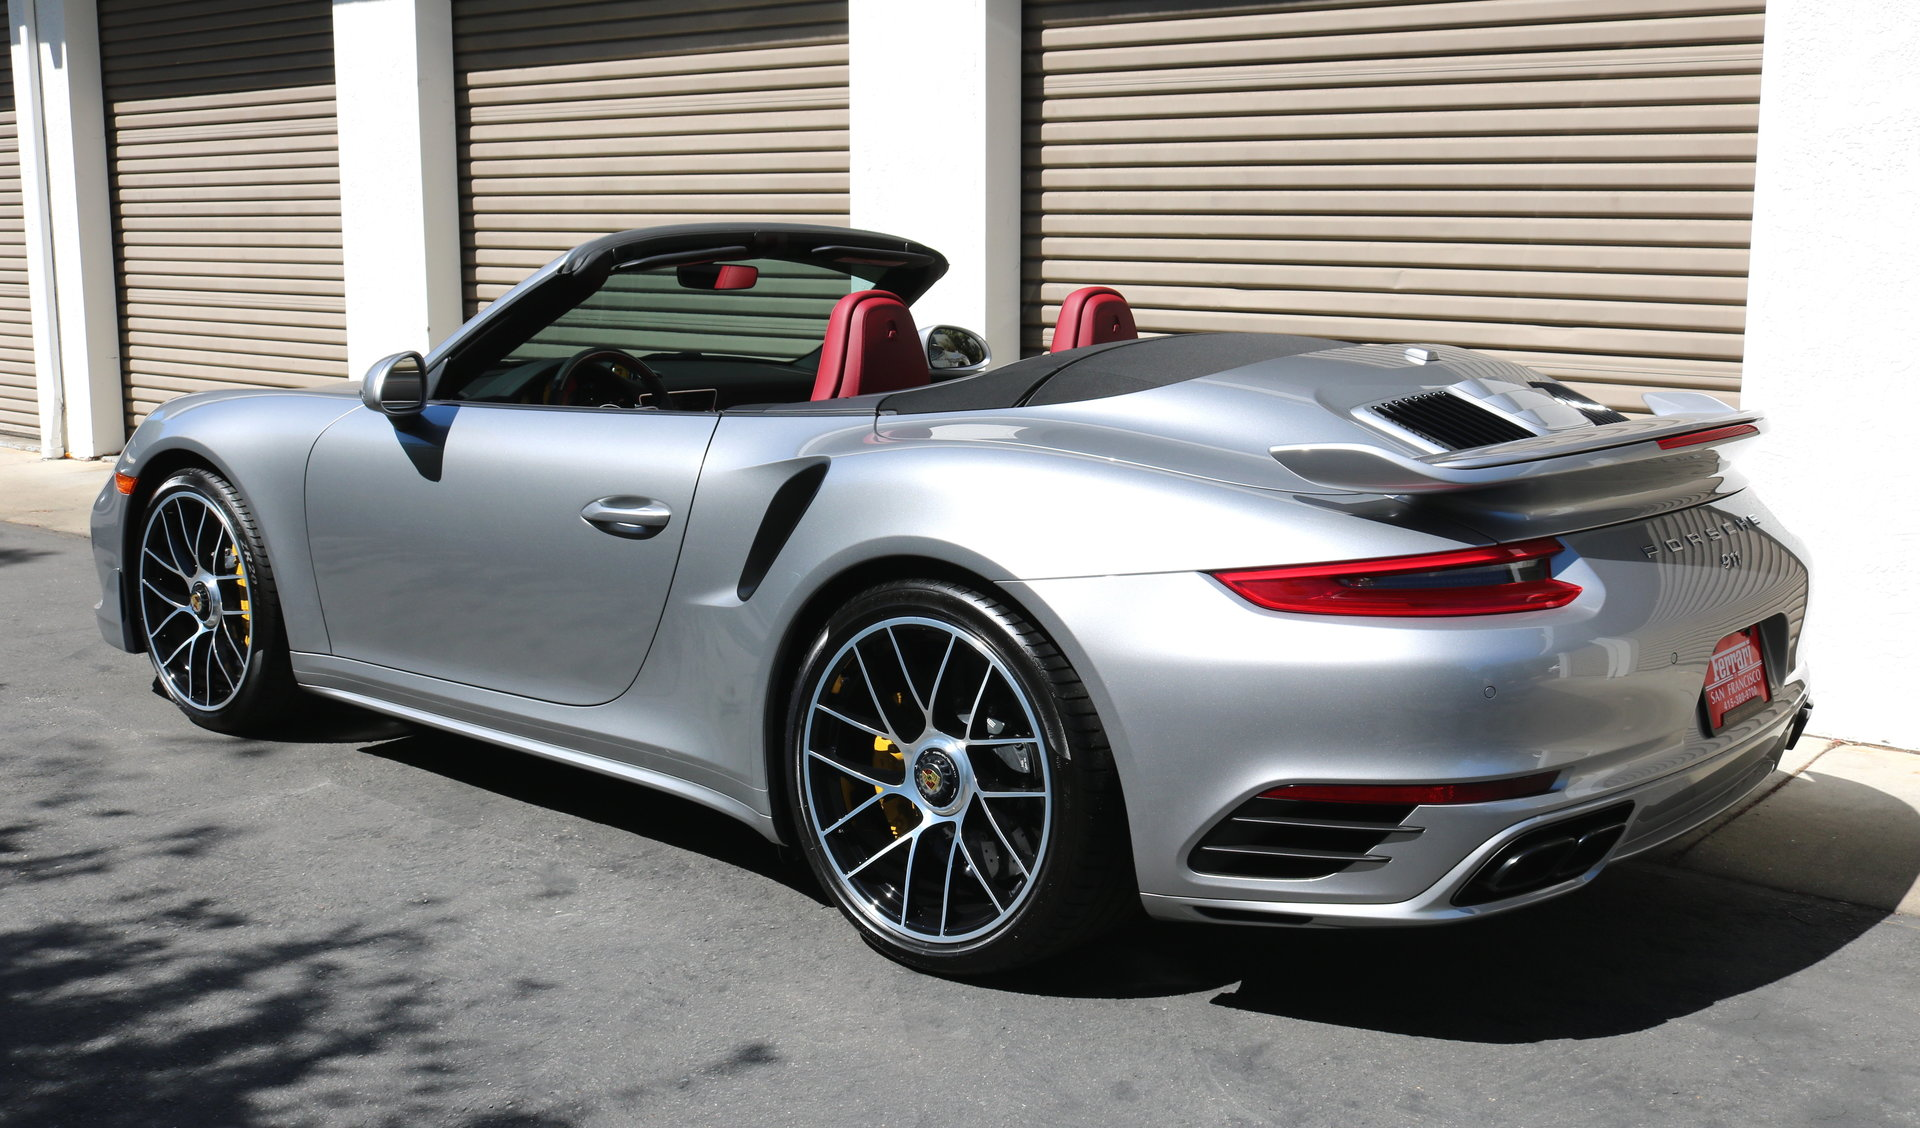 2017 porsche 911 turbo s cabriolet for sale 92064 mcg. Black Bedroom Furniture Sets. Home Design Ideas